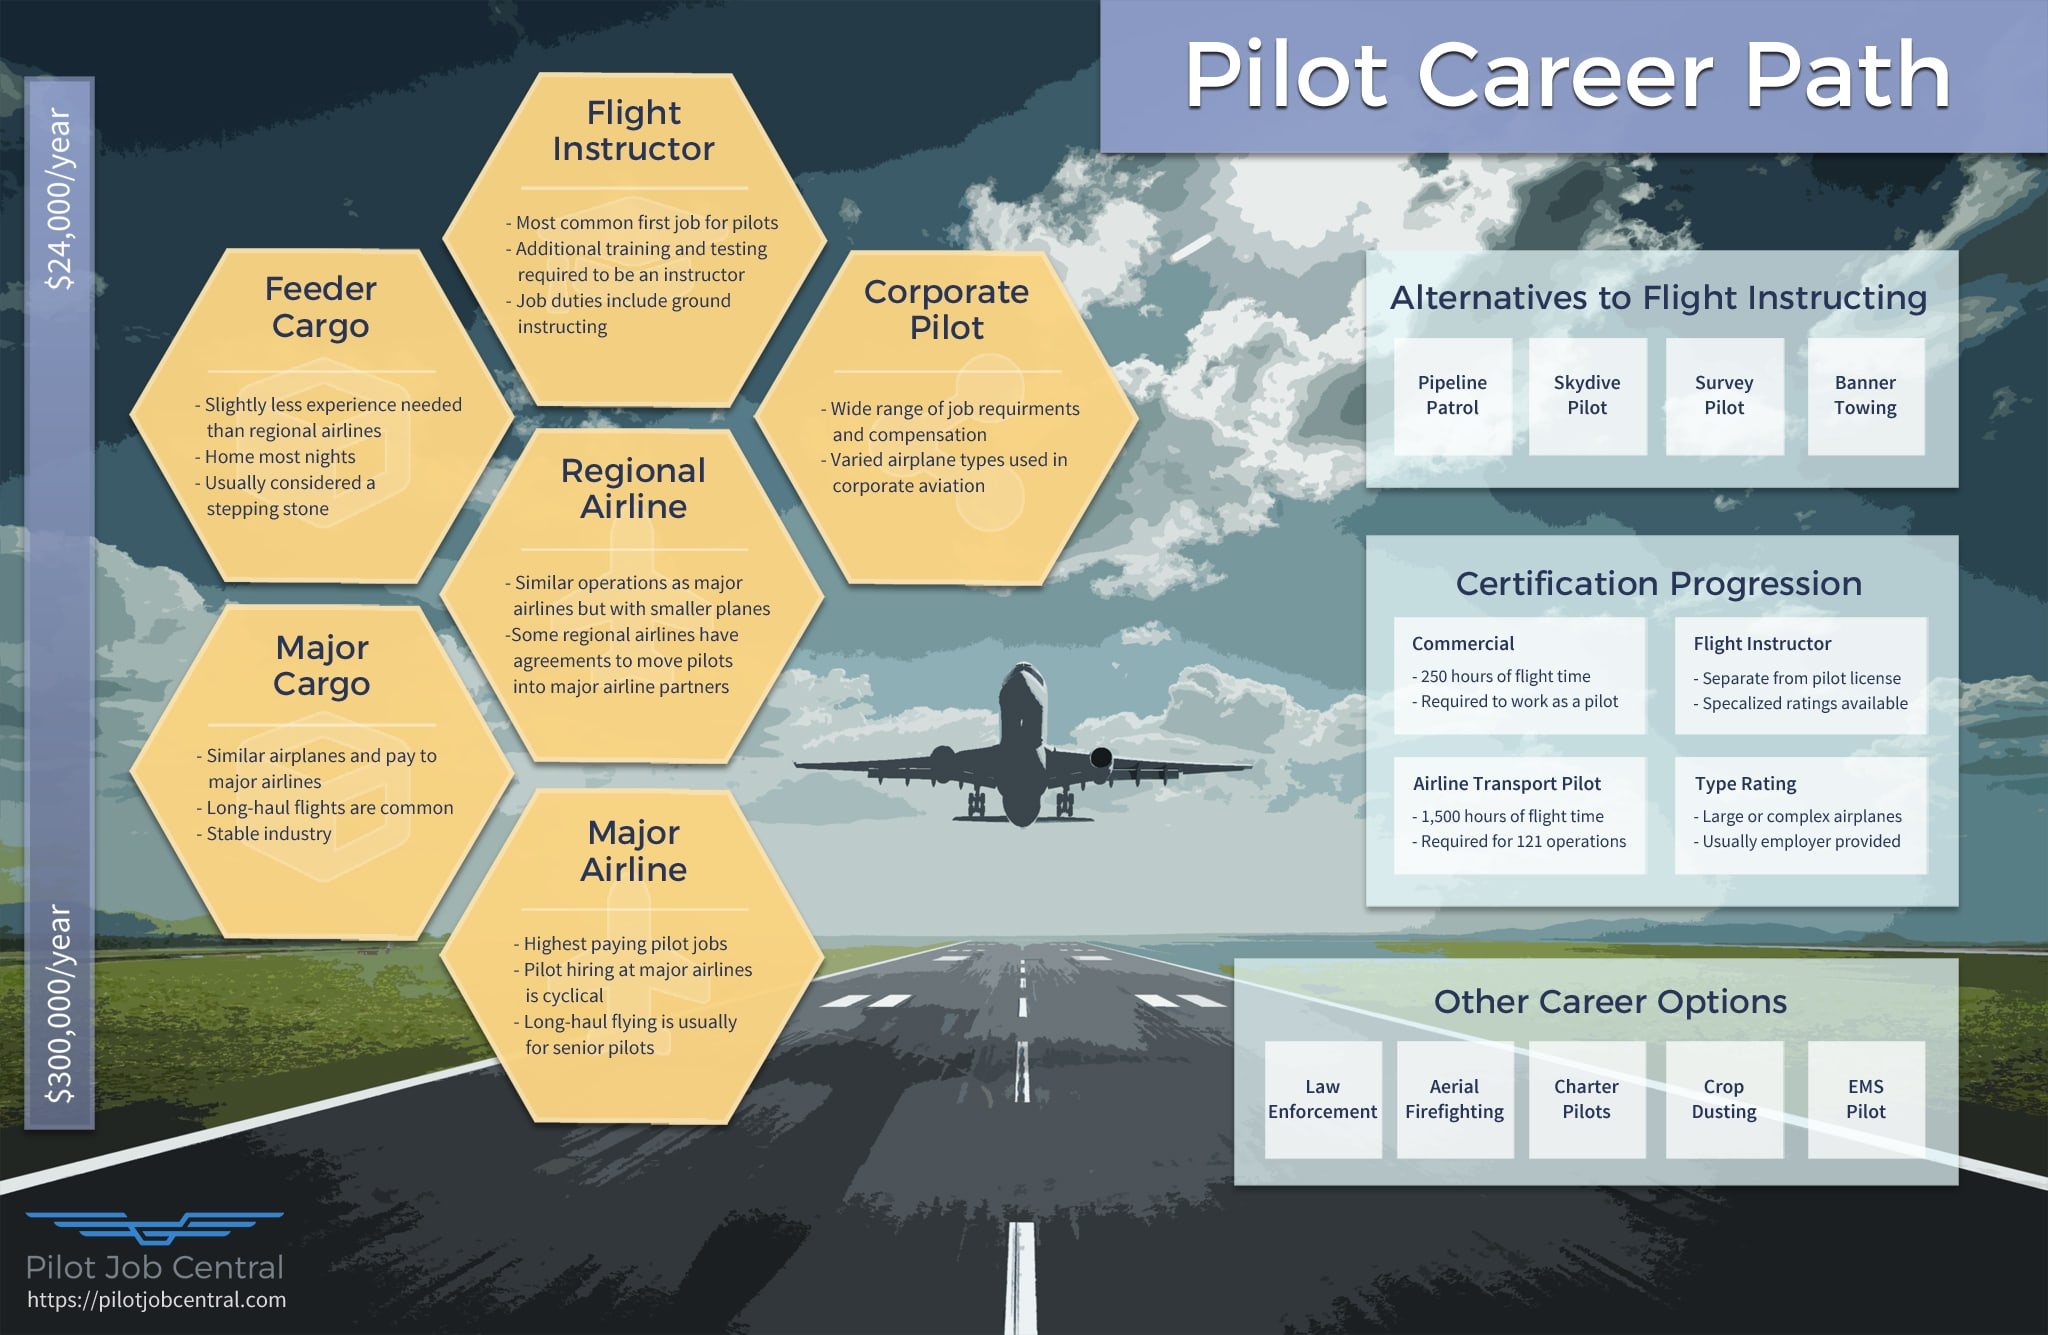 Pilot Career Path Infographic